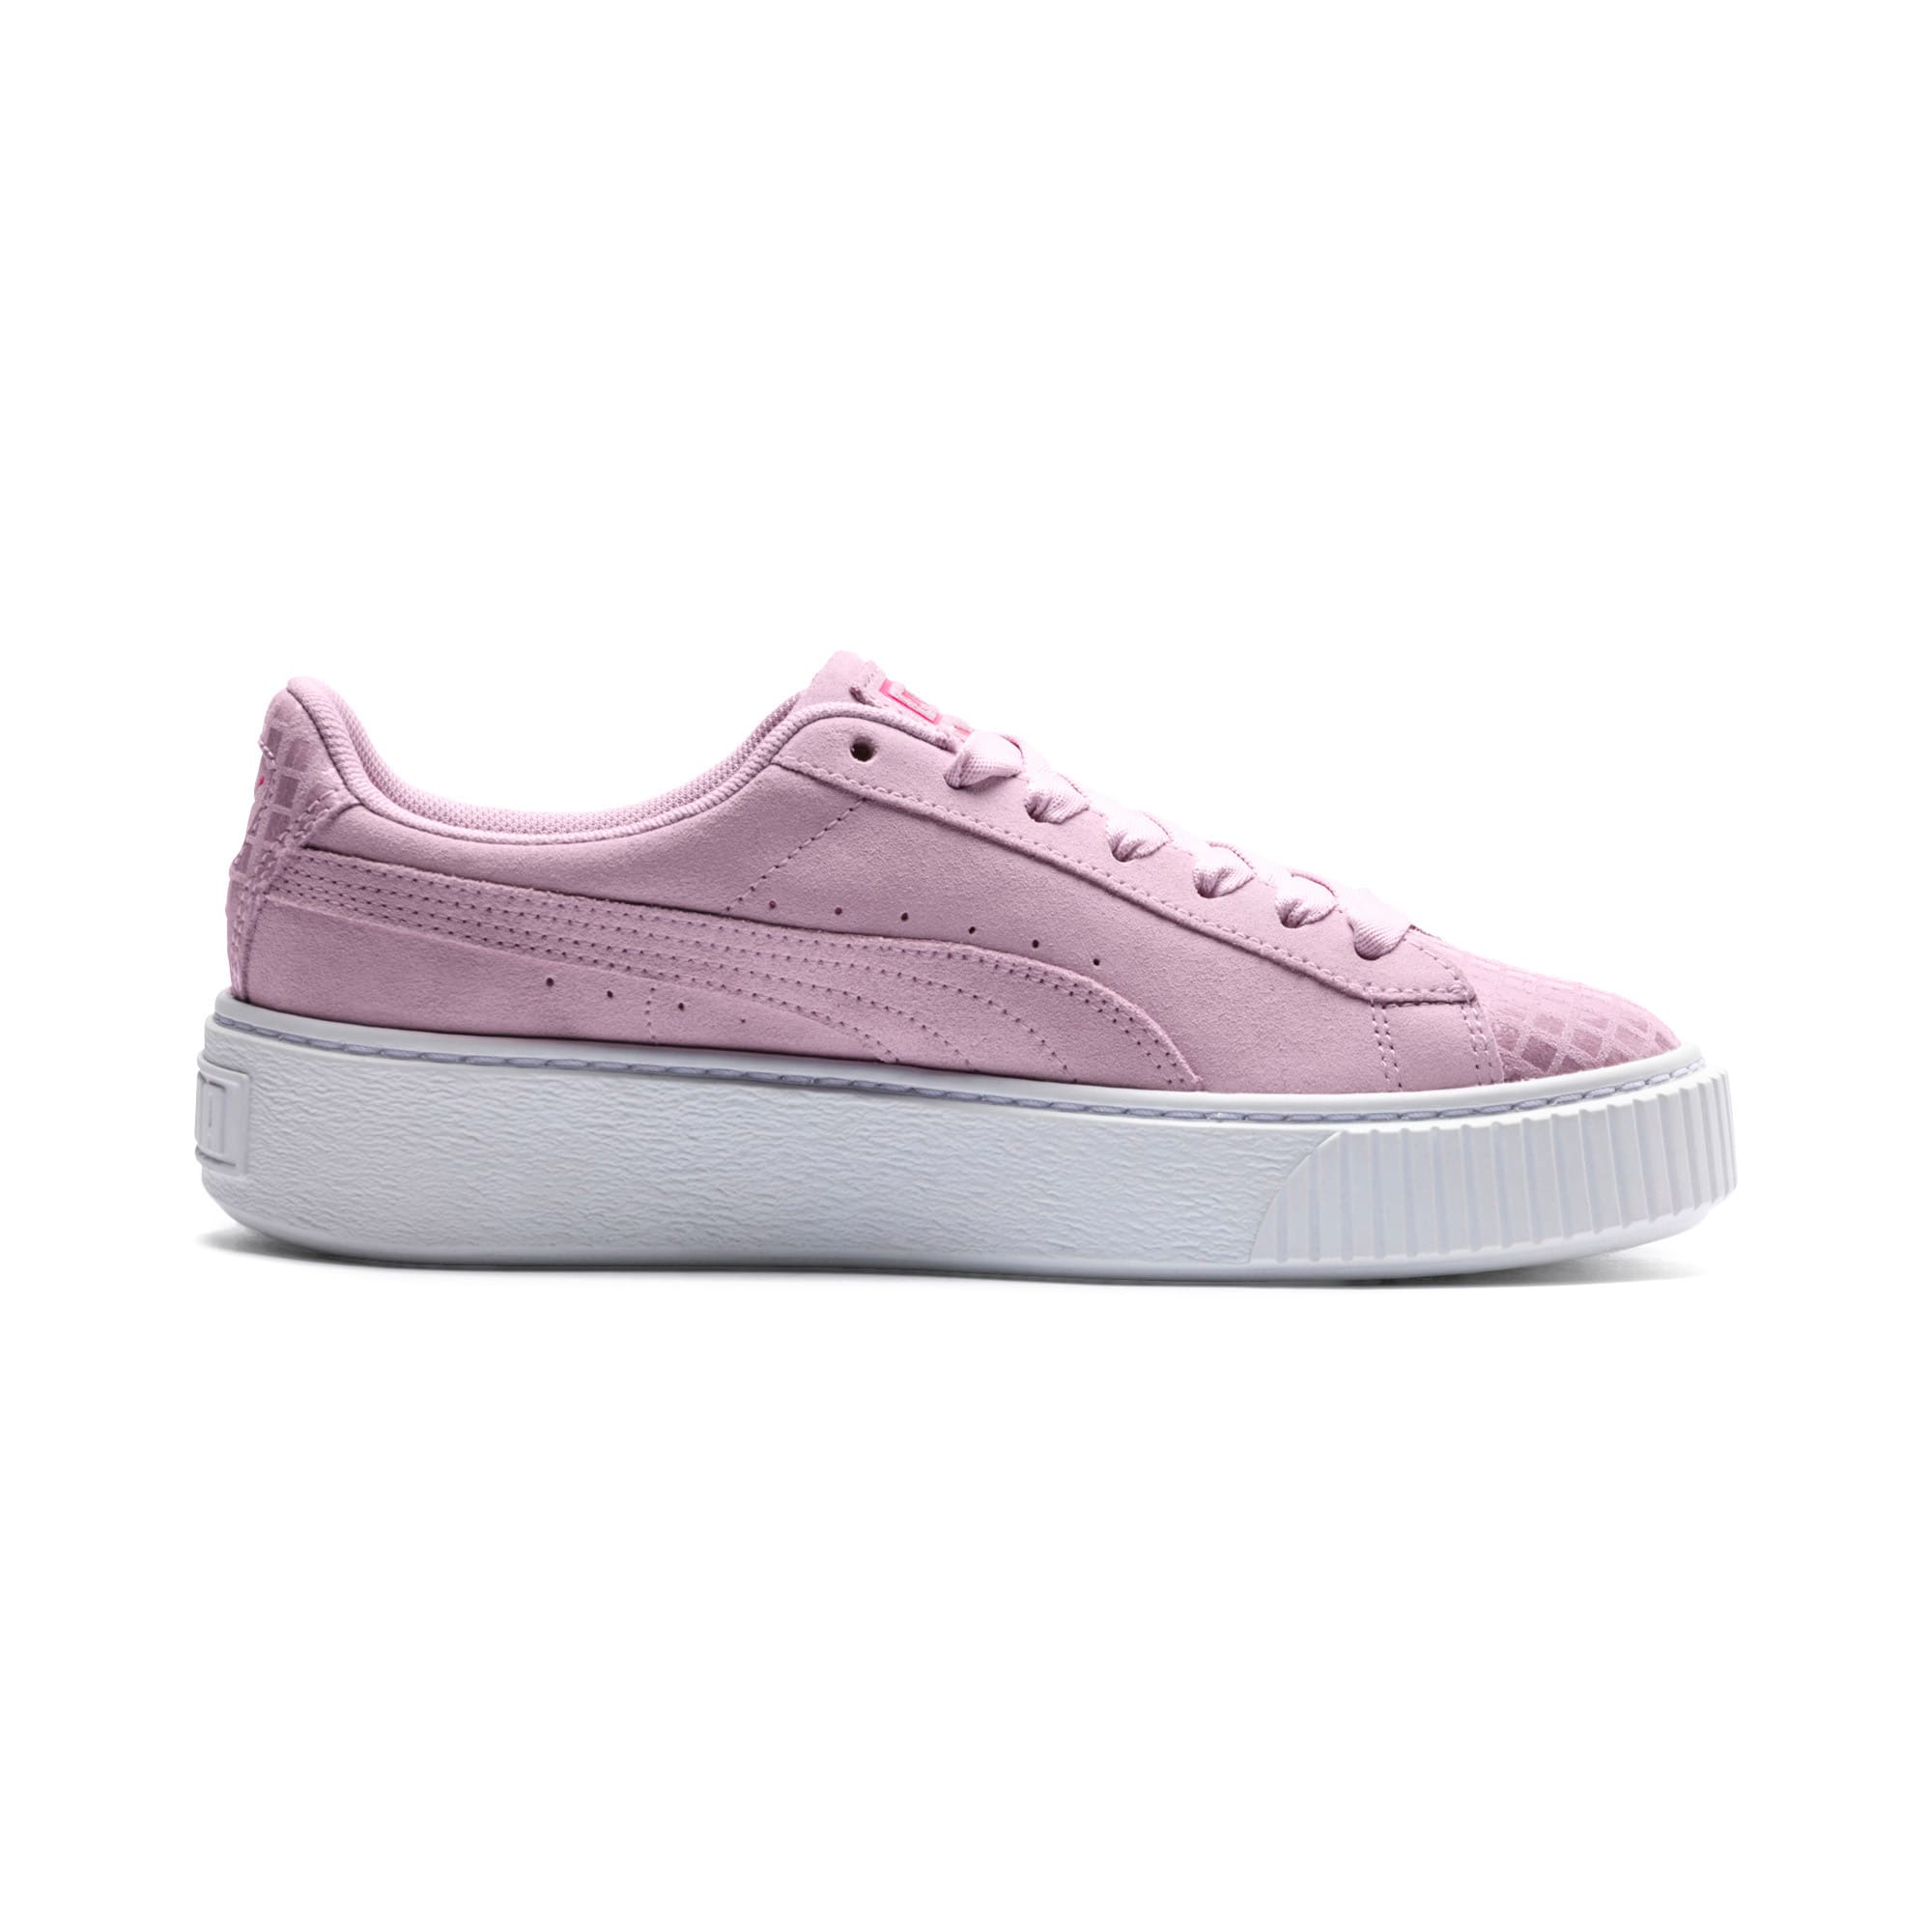 Thumbnail 5 of Suede Platform Street 2 Women's Trainers, Winsome Orchid, medium-IND